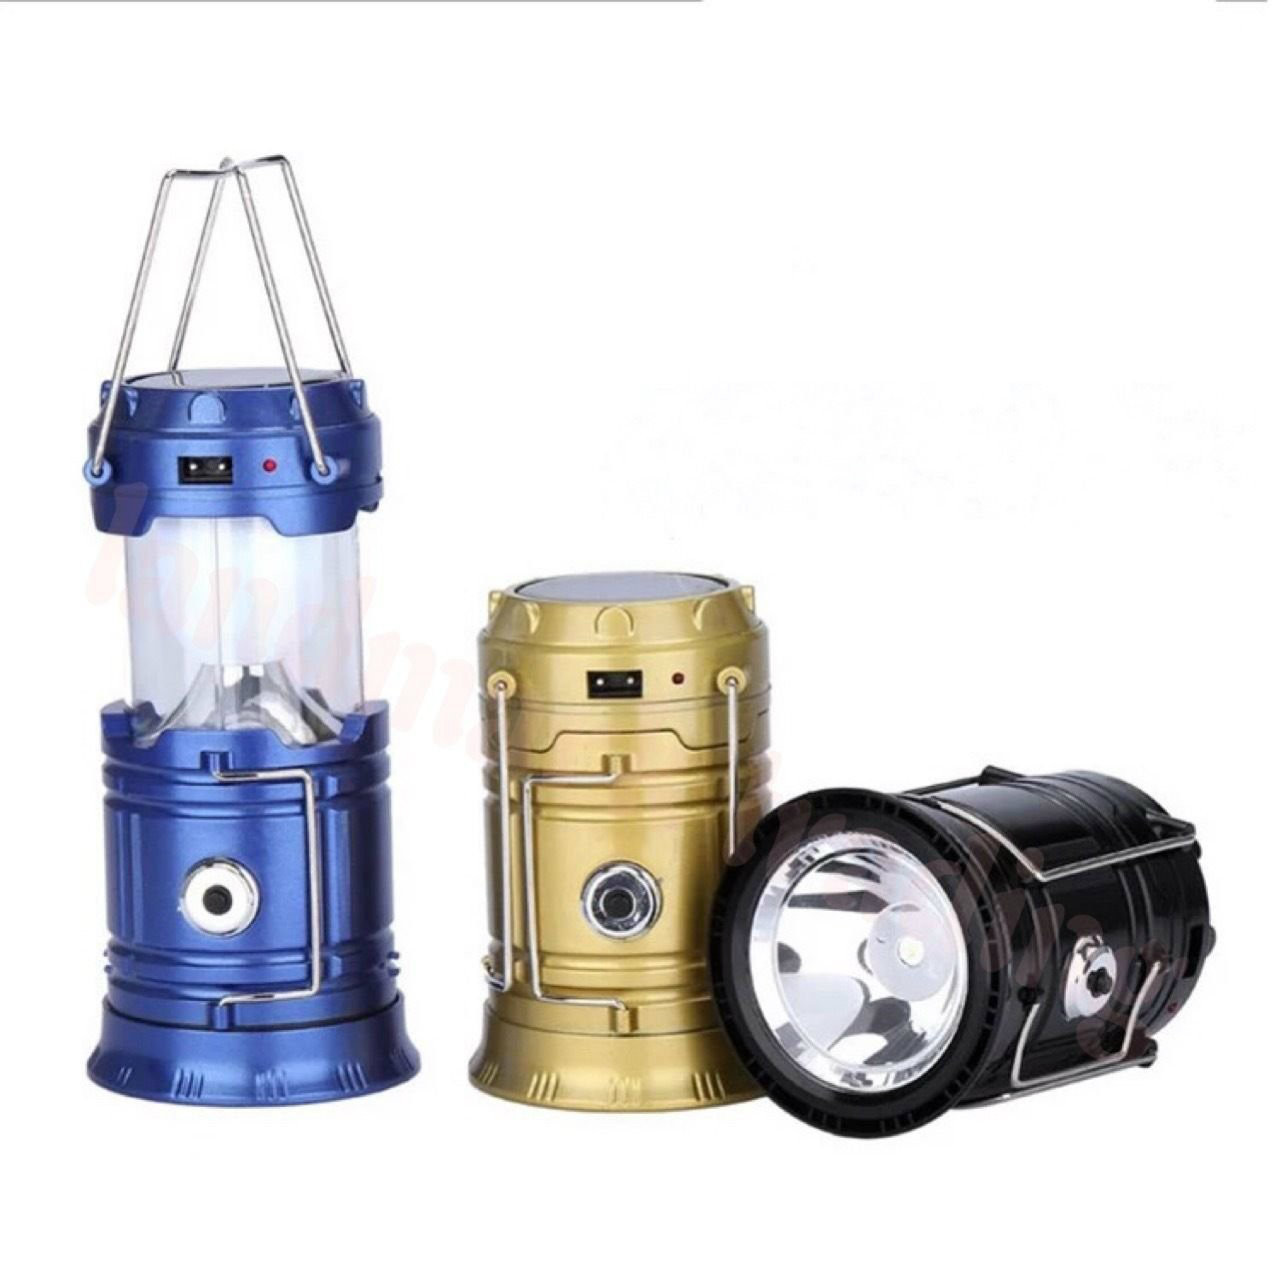 Camping Lantern Fan USB and Battery Operated 12 LED Tent Fan Light Rechargeable Flashlight Ceiling Fan Lamp 3 AA Batteries Hanging Camping Hiking Traveling Fishing Lantern